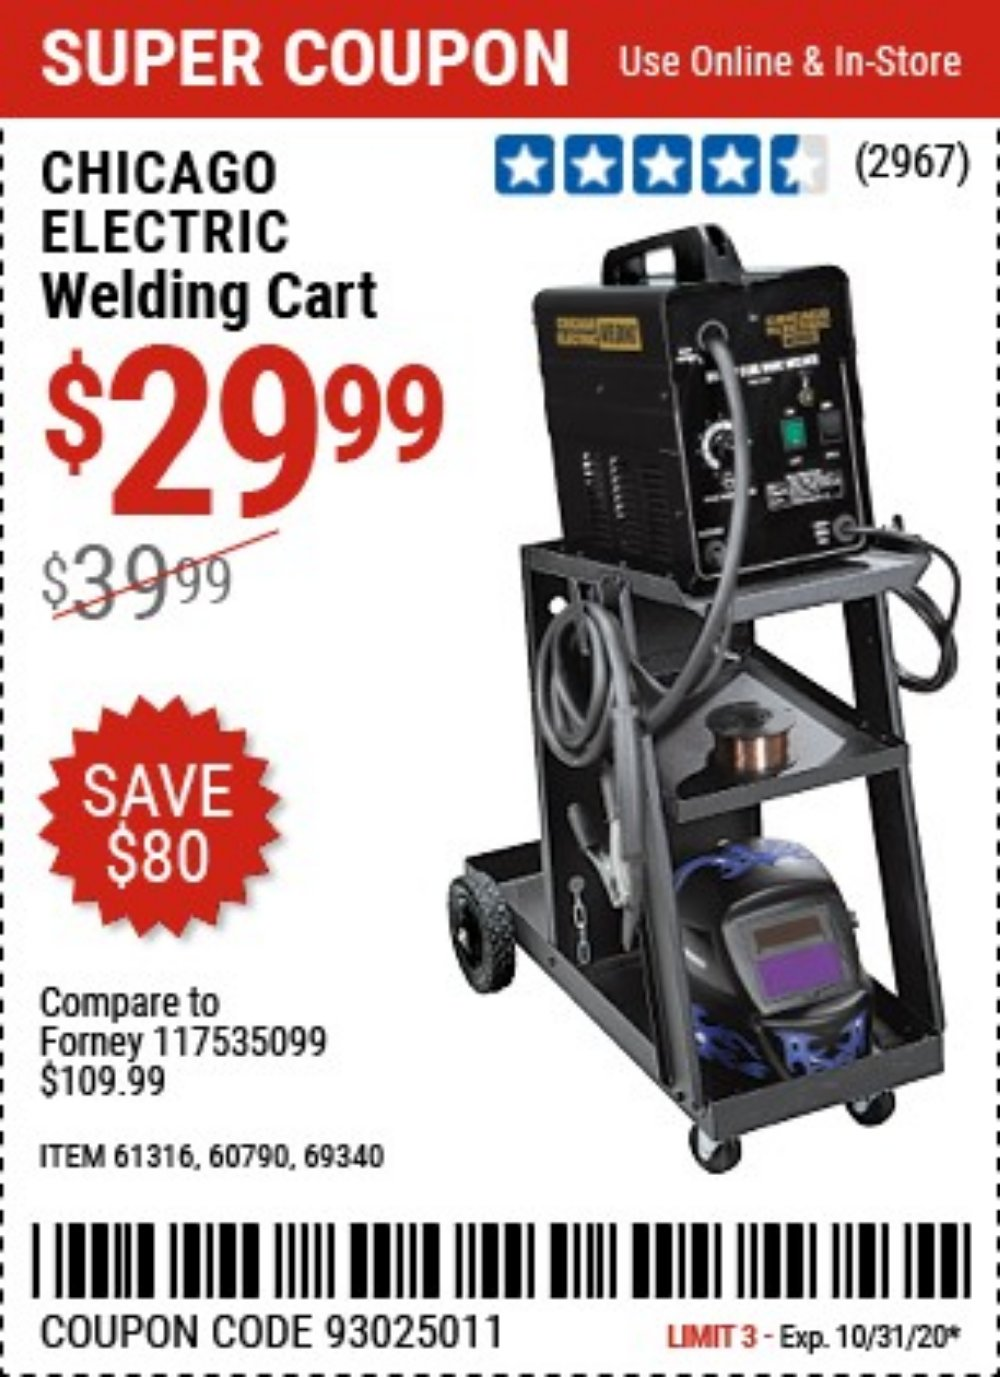 Harbor Freight Coupon, HF Coupons - Mig-flux Welding Cart